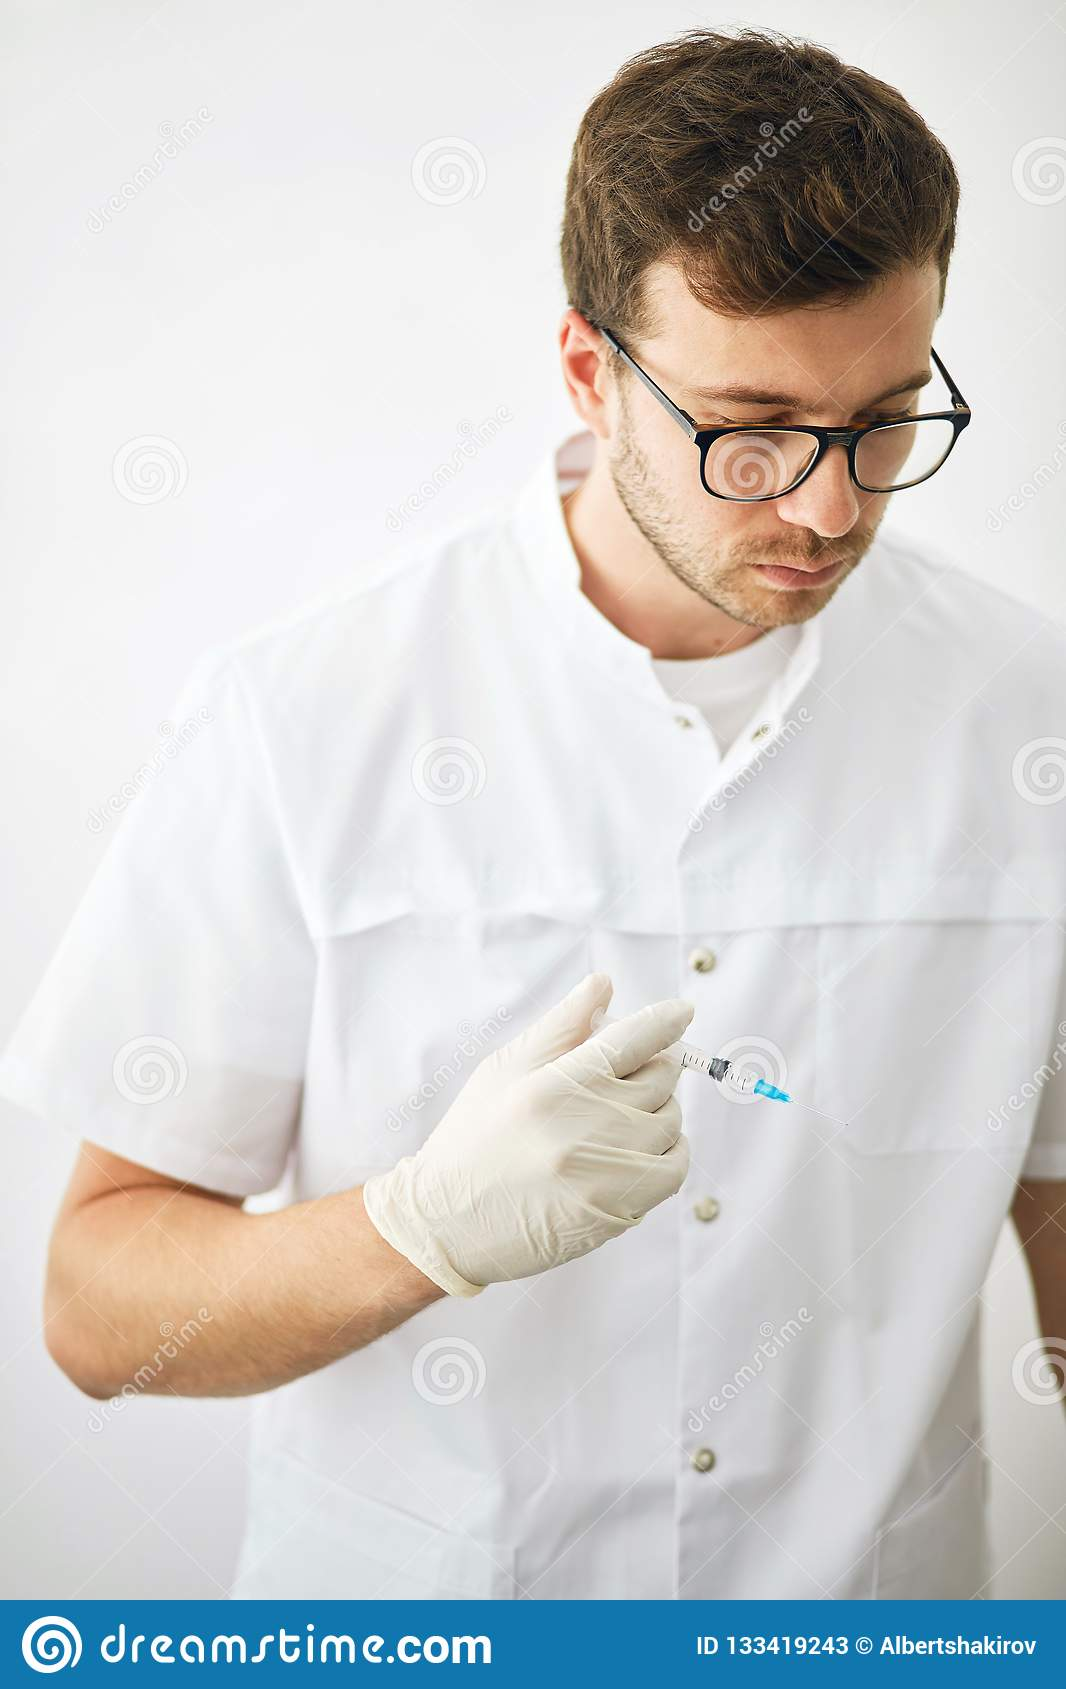 Serious doctor with medicine vaccination equipment with needle.